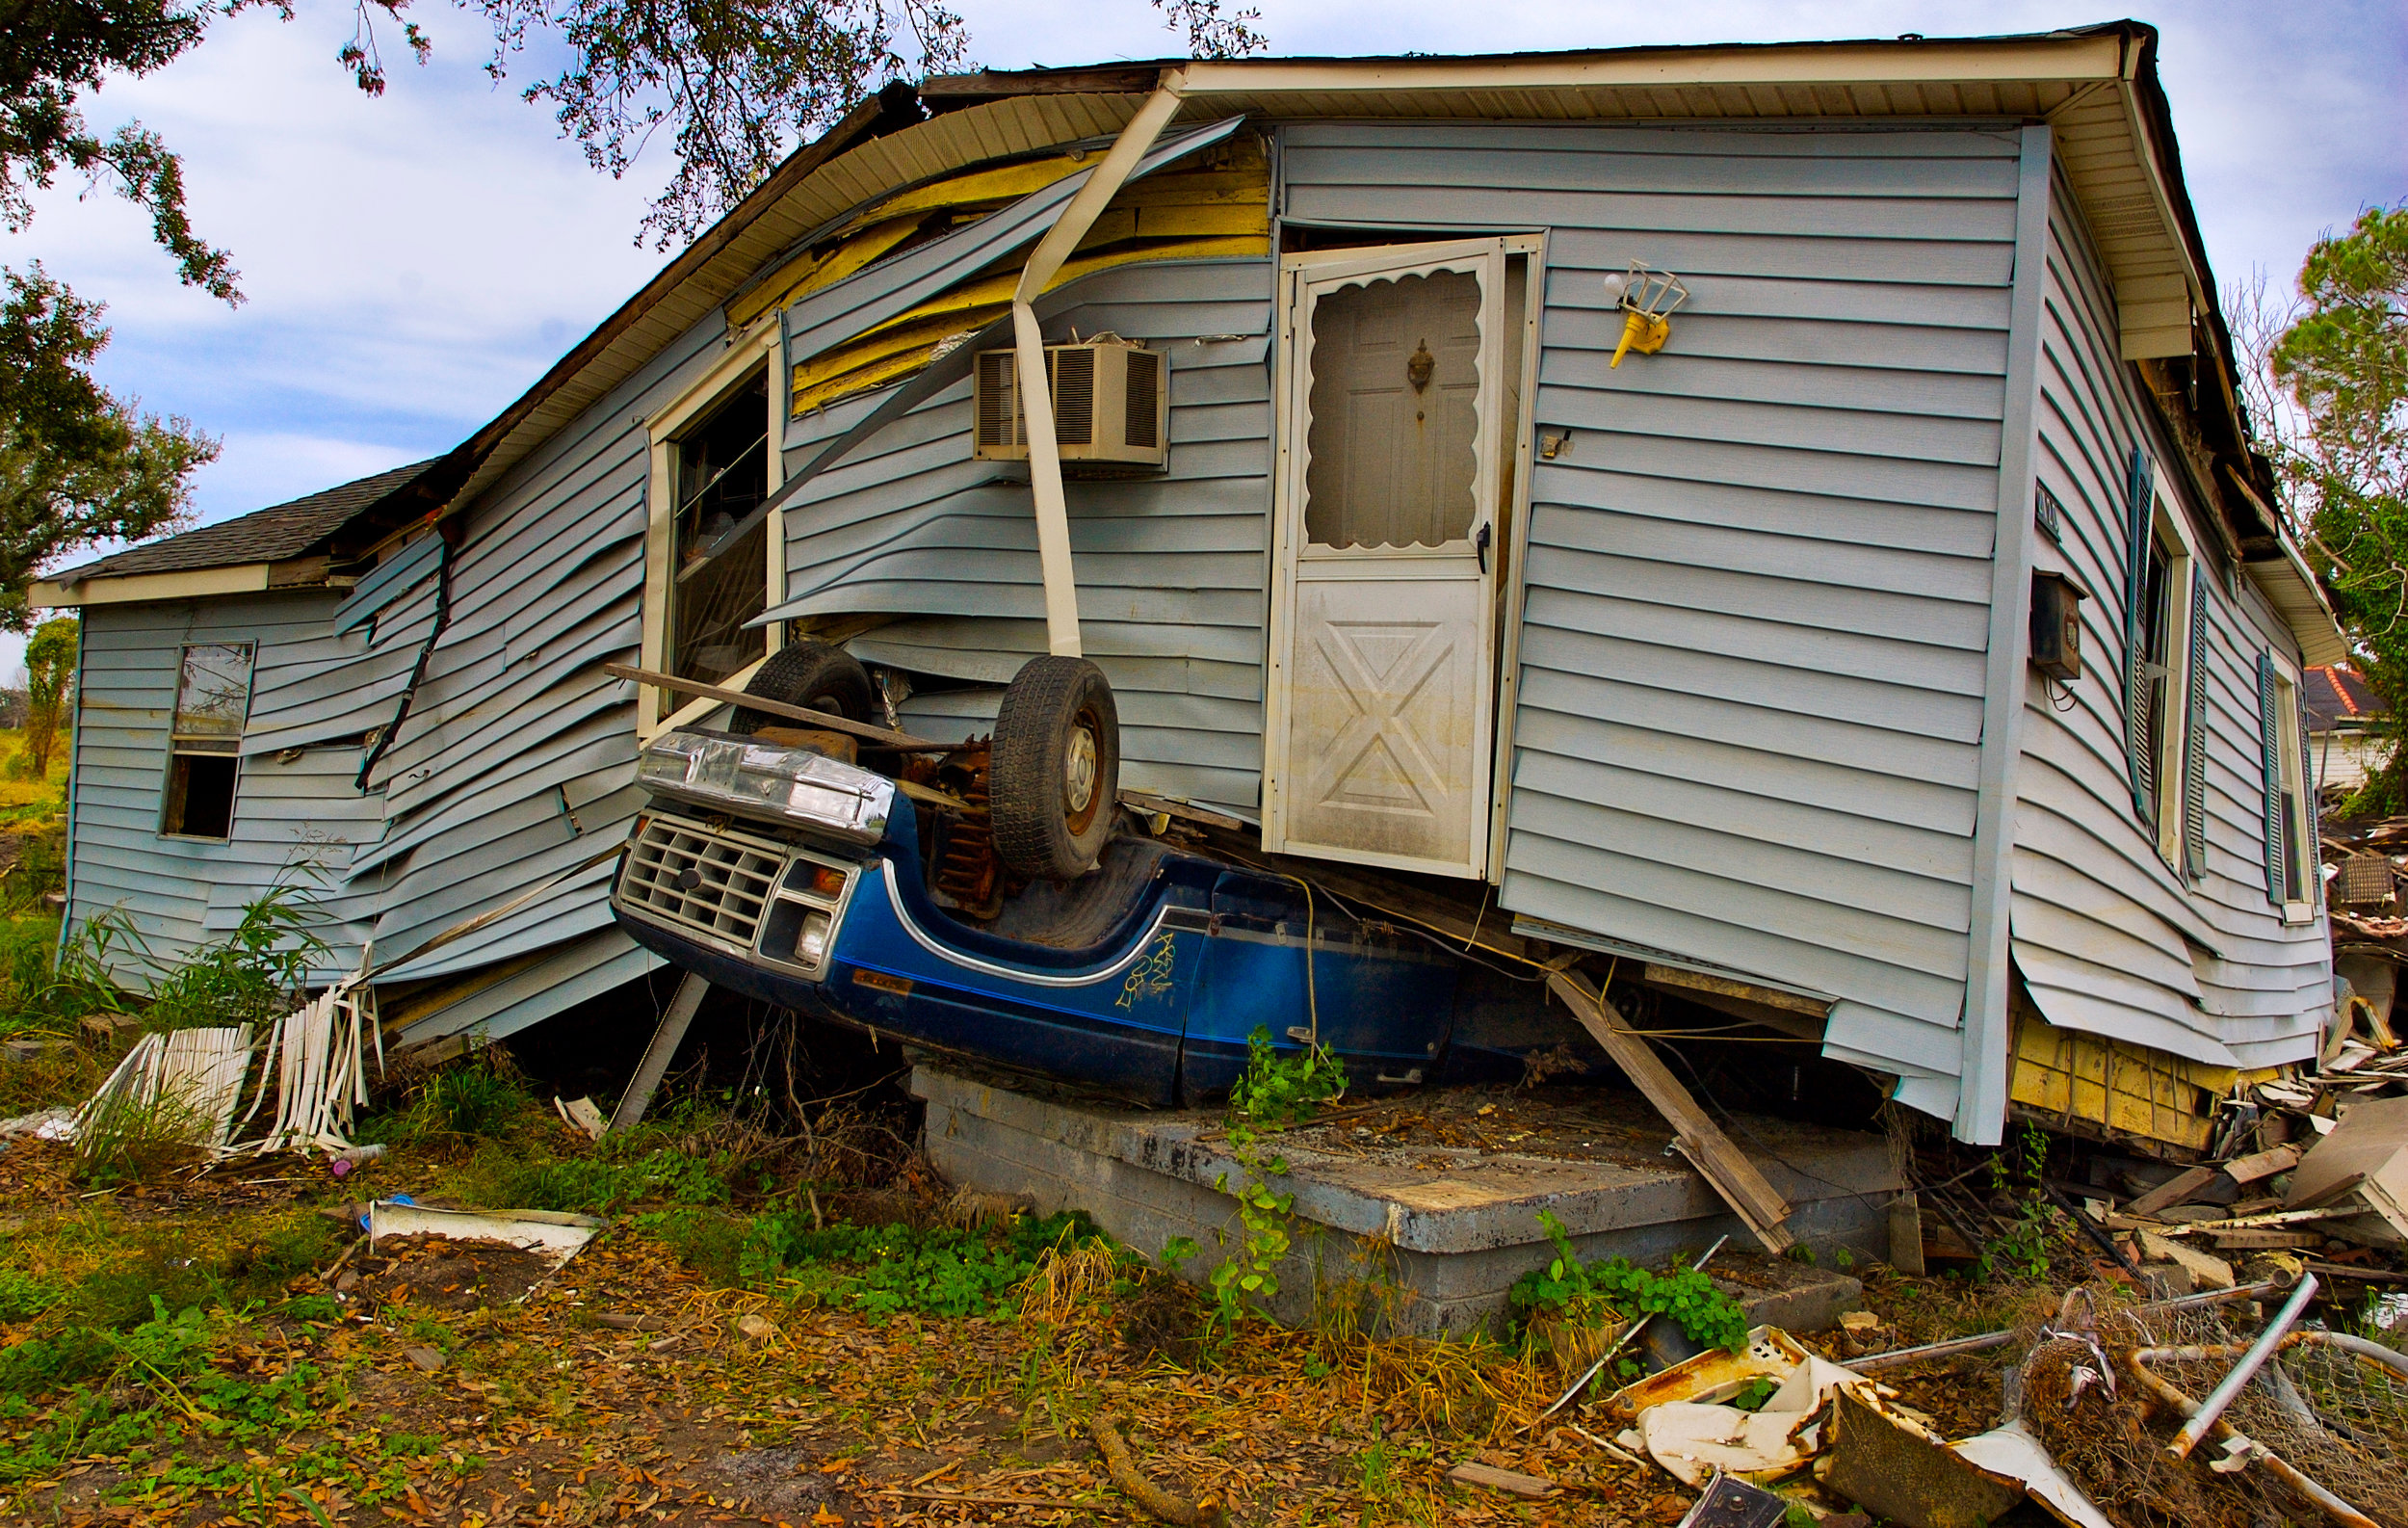 Communities in the Florida panhandle are still waiting for rebuilding aid after hurricanes last year ravaged the region. ( Image via Unsplash/@koopfilms)